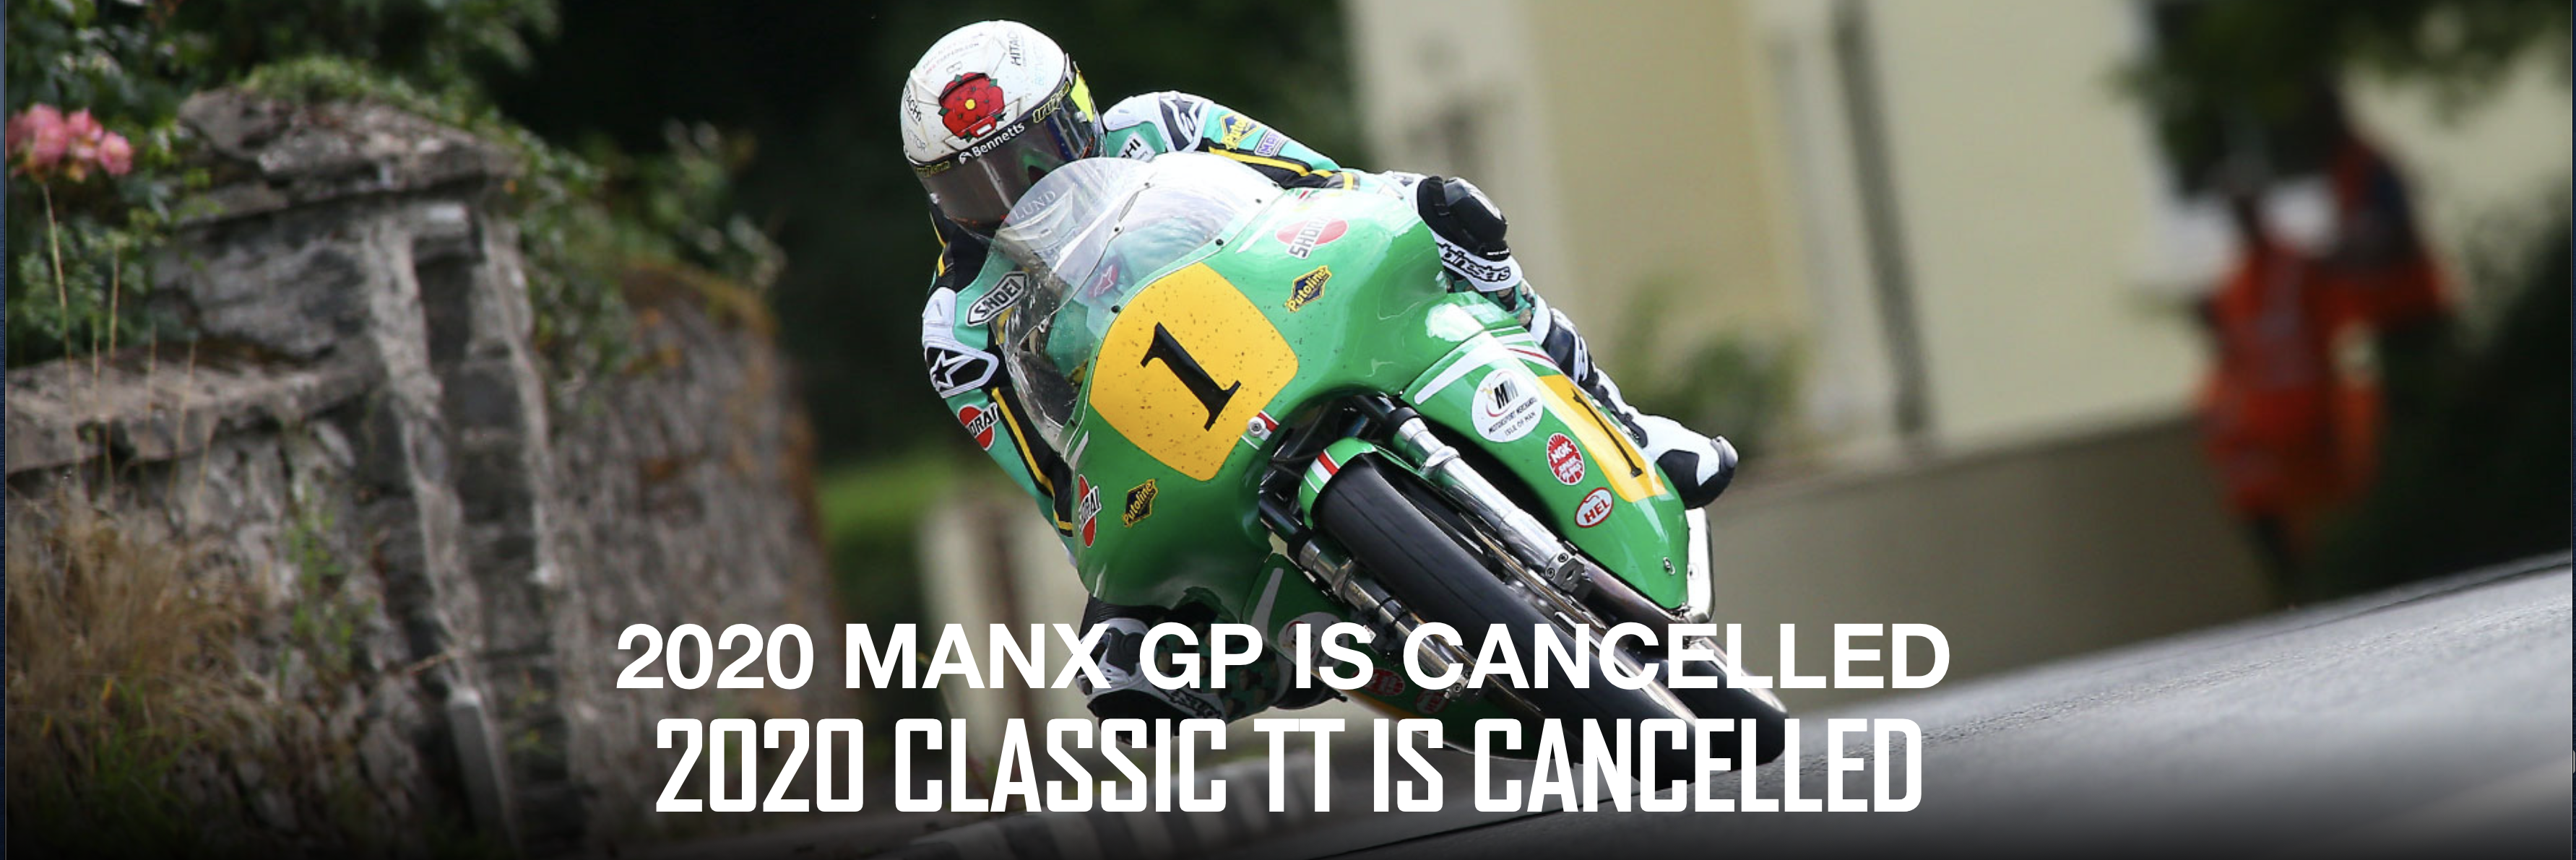 2020 Manx GP and Classic TT : Cancelled